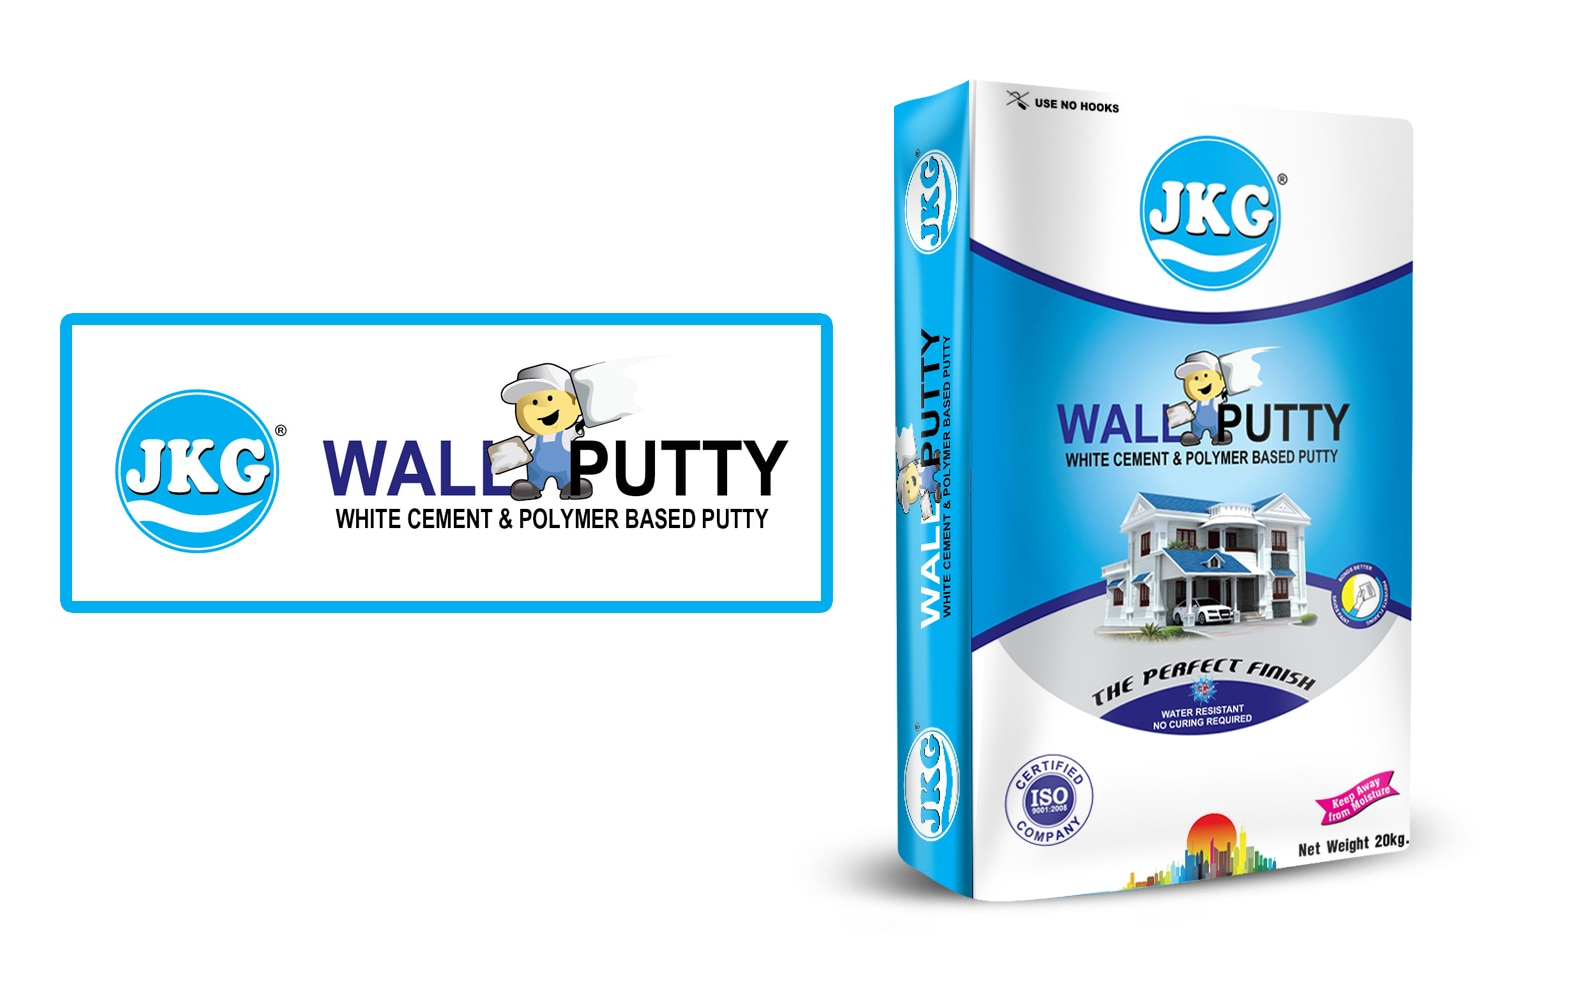 Best Wall Putty Manufacturer in Delhi/NCR Best Wall Putty Company in Delhi/NCR Best Wall Putty in Delhi/NCR Best Wall Putty in India Best Wall Putty in Haryana Best Wall Putty Manufacturer in Rohini   For more info visit www.jkgcompany.com For Inquiries contact +919811786410, +919873186410